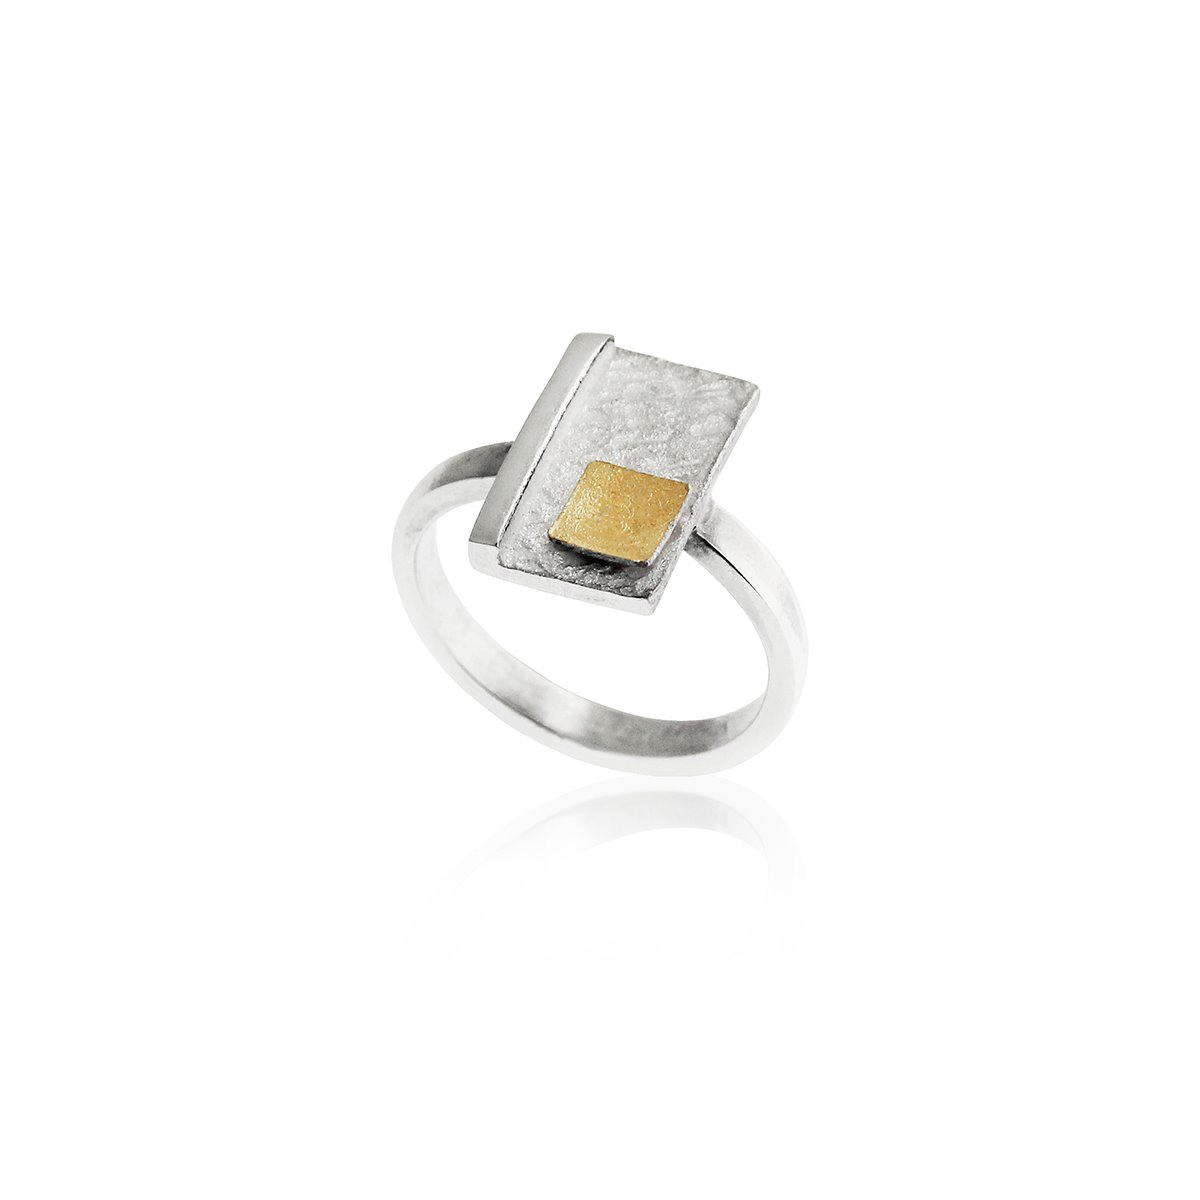 SILVER & GOLD RING. R1520